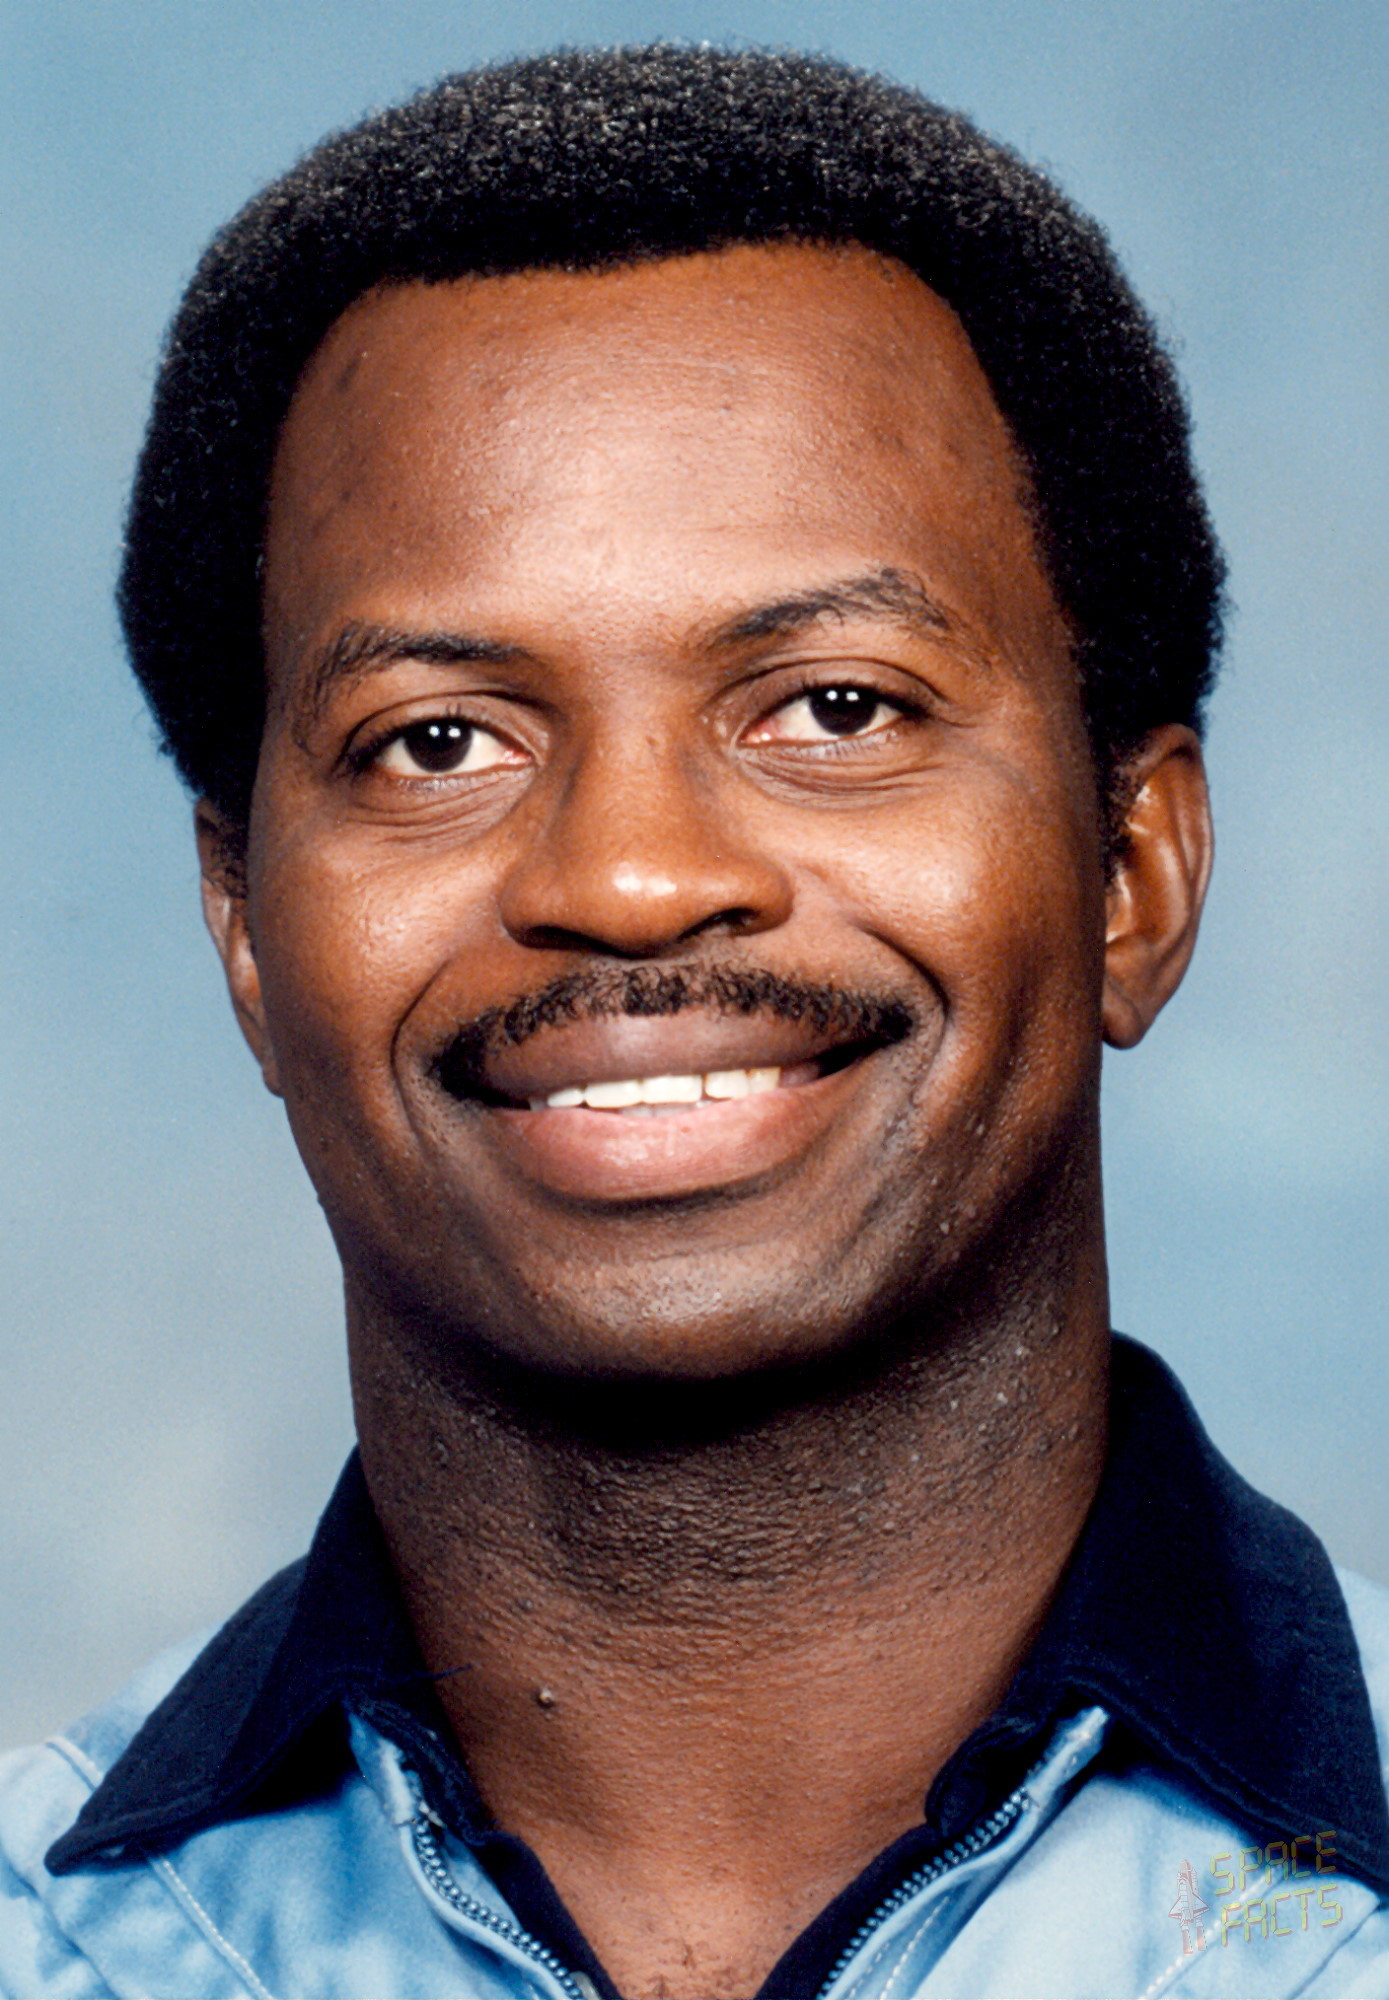 Astronaut Biography: Ronald McNair